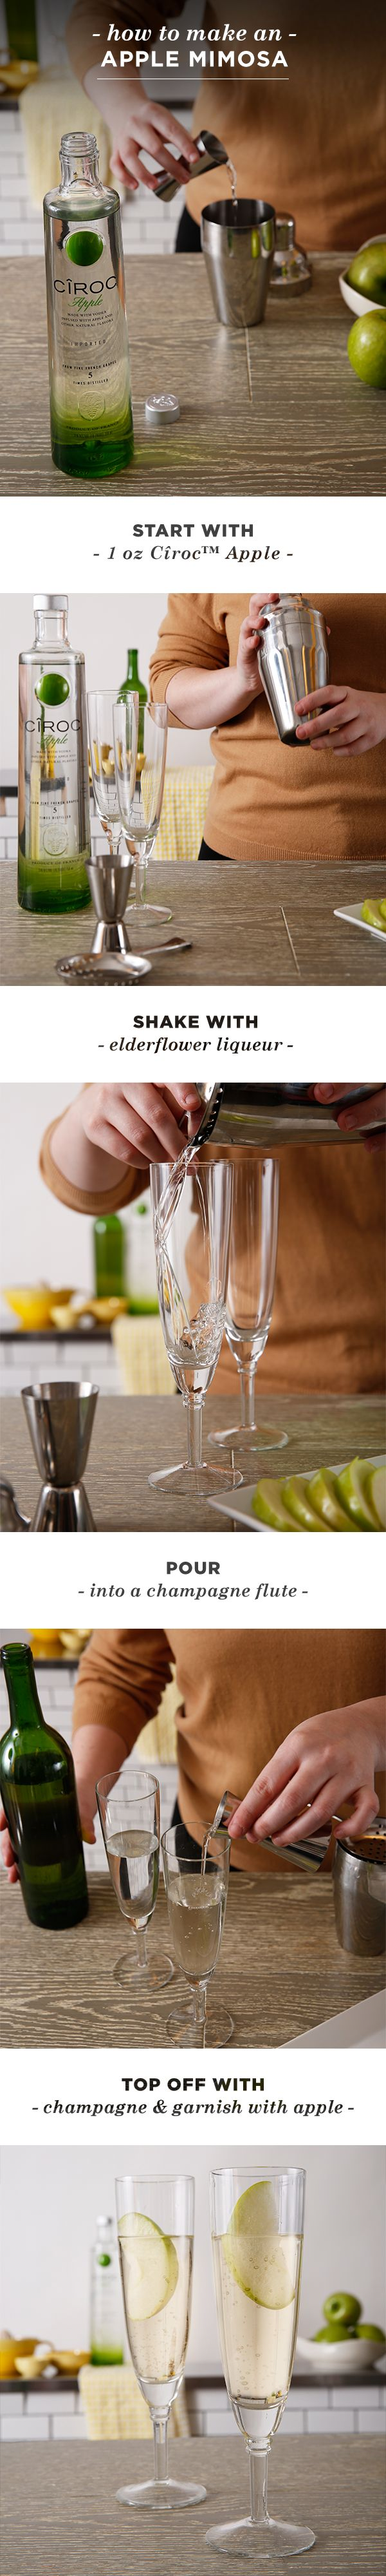 For your next Sunday brunch, this delicious new twist on the classic bubbly mimosa cocktail is a must-have. Combine 1 oz. Cîroc™ Apple and 0.25 oz. elderflower liqueur in a shaker with ice, and shake well. Then, strain into a champagne flute and top with 0.25 oz. sparkling wine or champagne. Garnish with an apple slice!